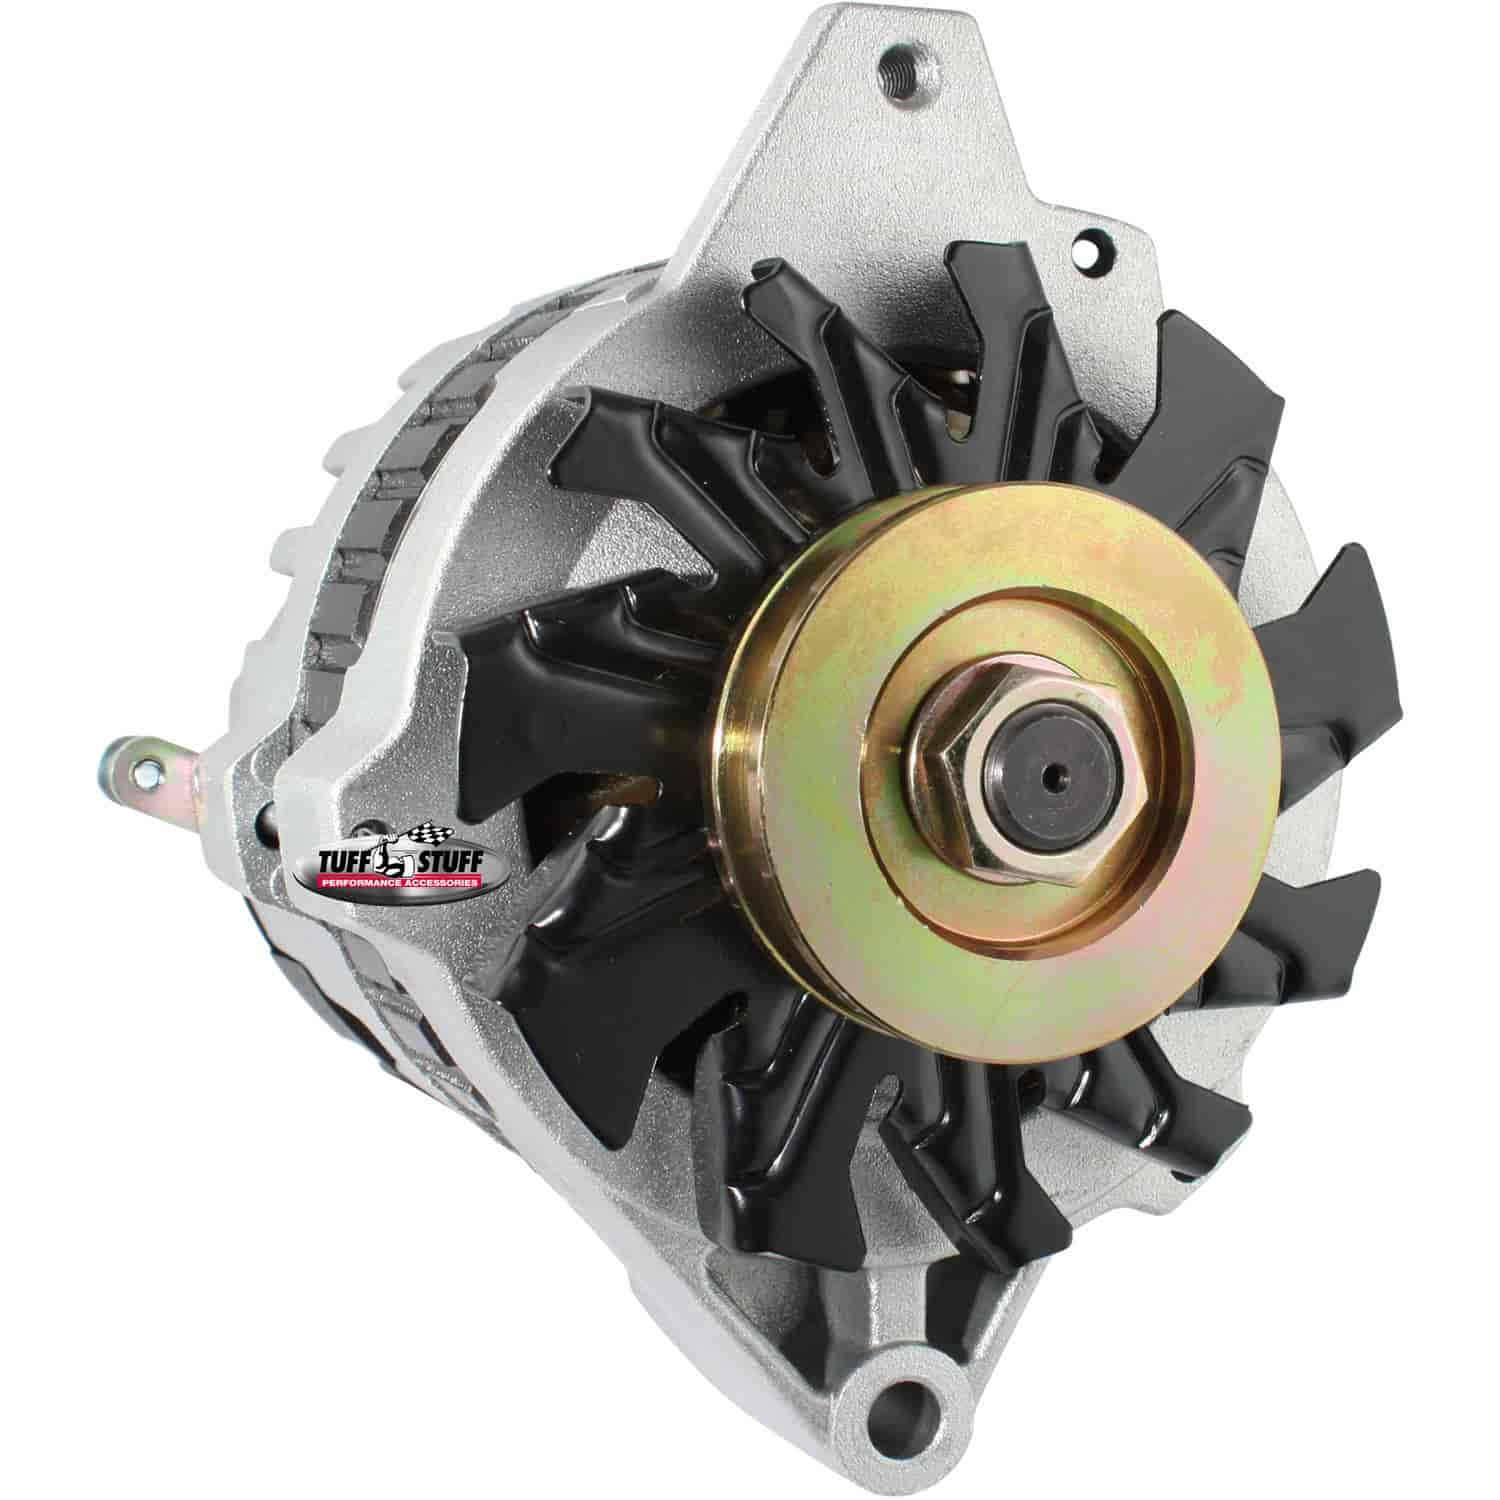 Tuff Stuff 7140B - Tuff Stuff Heavy Duty Alternator